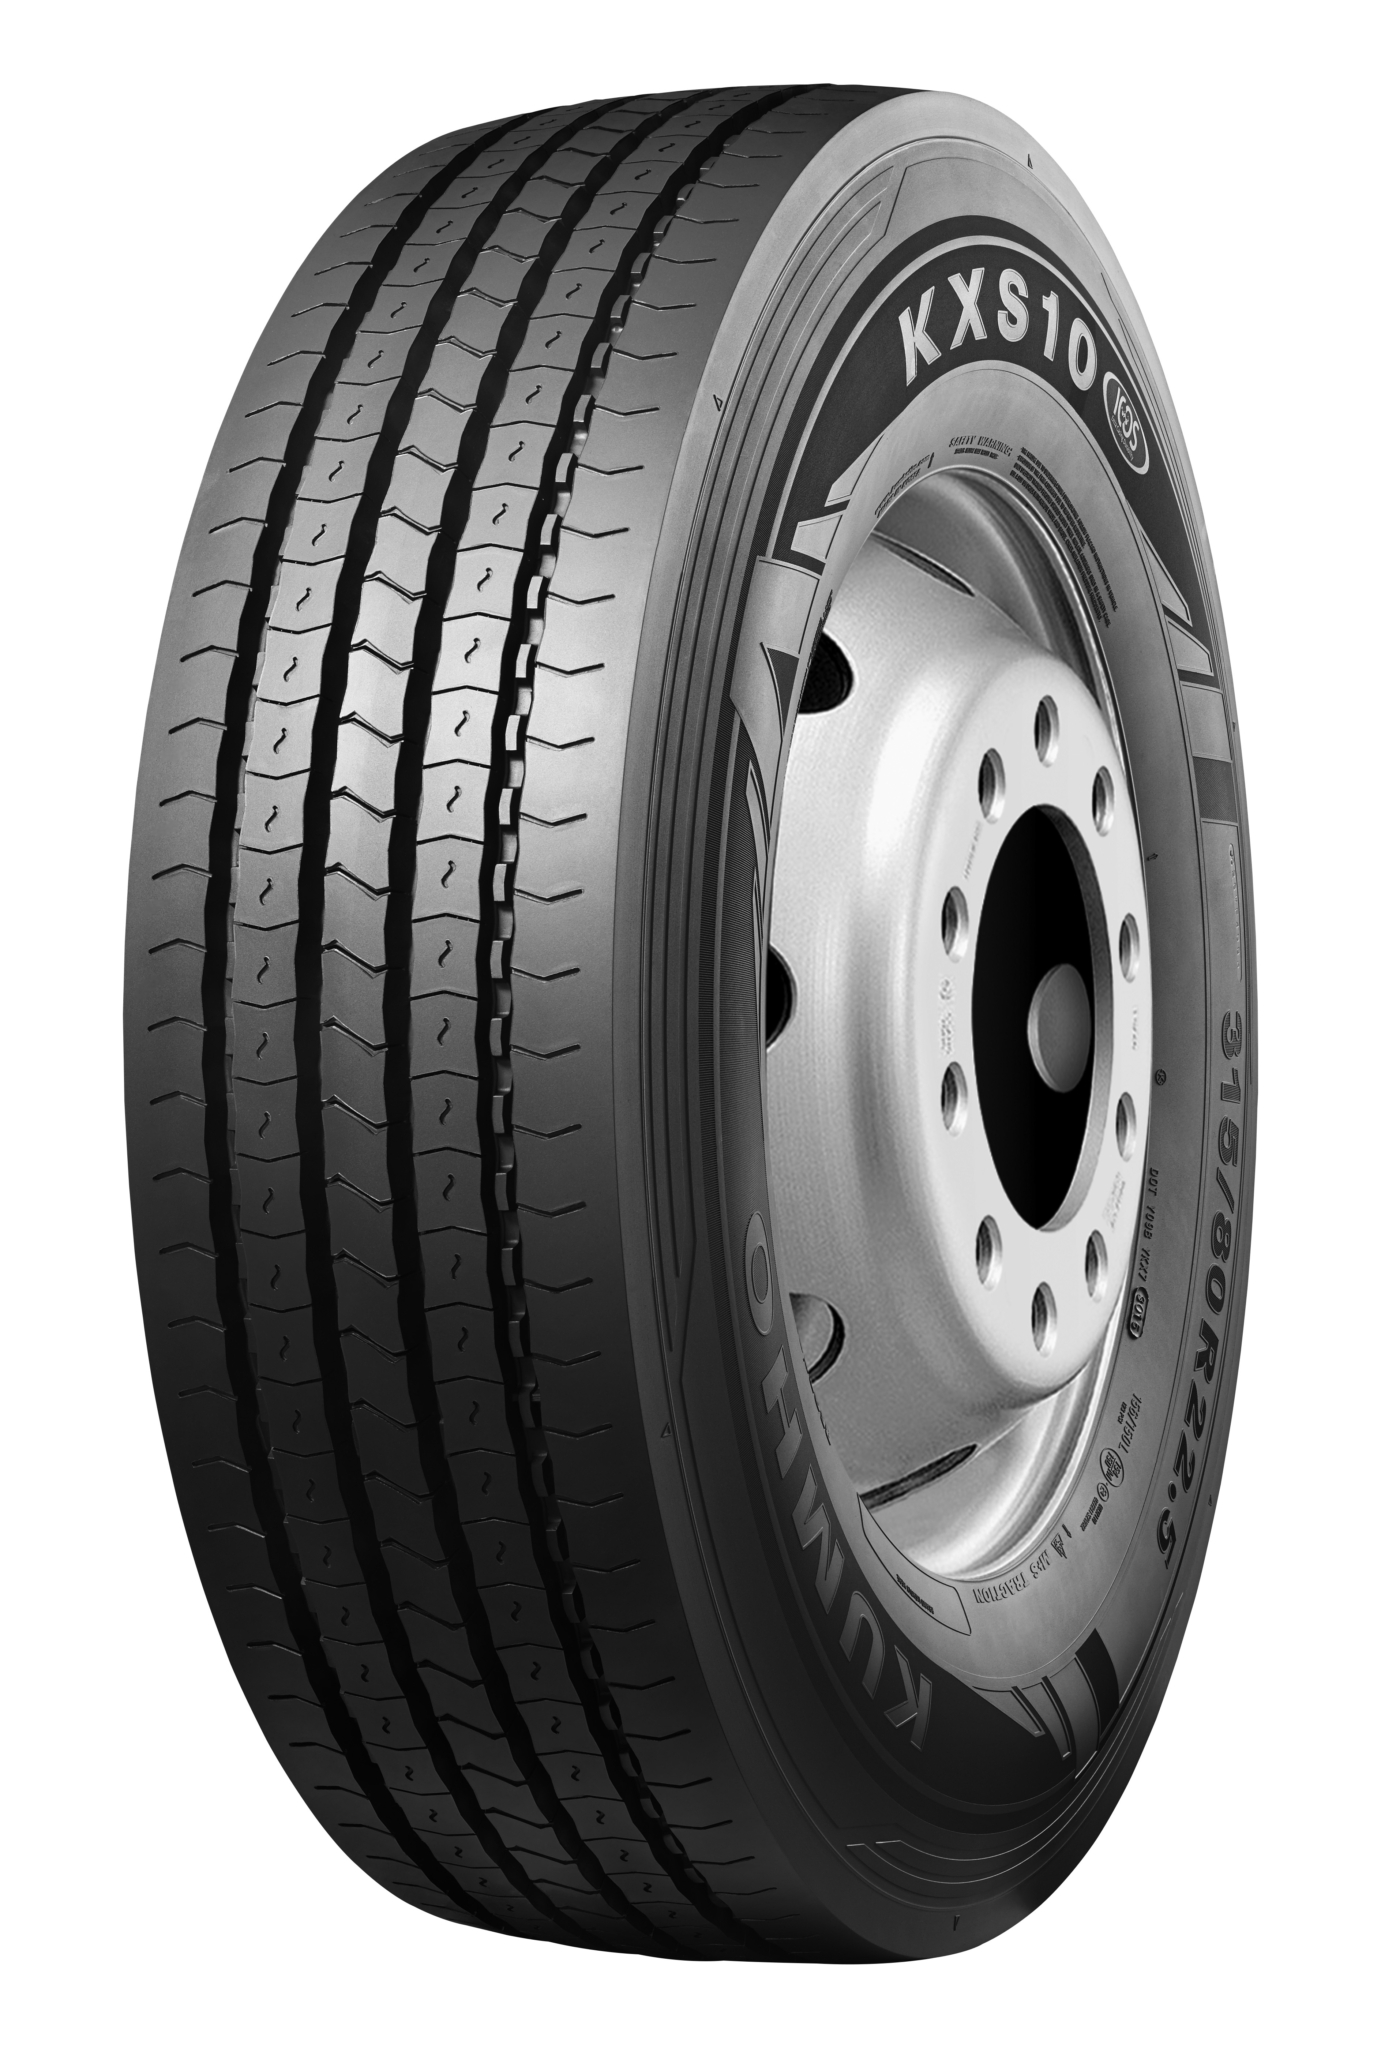 Kumho truck tyre range supported by 'significant investment'